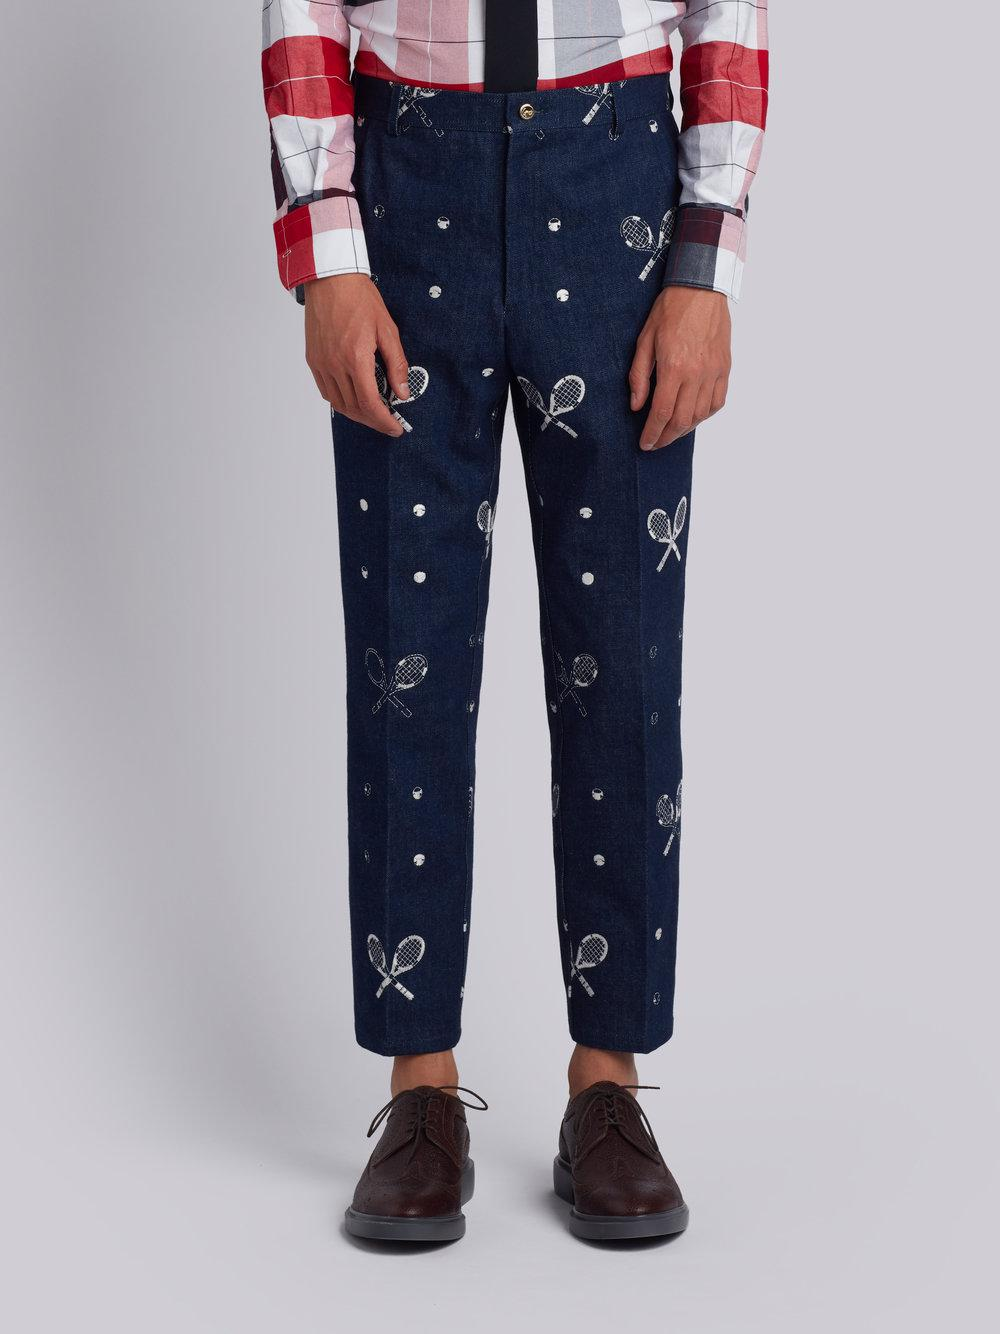 Unconstructed Chino In Washed Denim With Distressed Tennis Half Drop Embroidery - Blue Thom Browne m5h8pO1ql